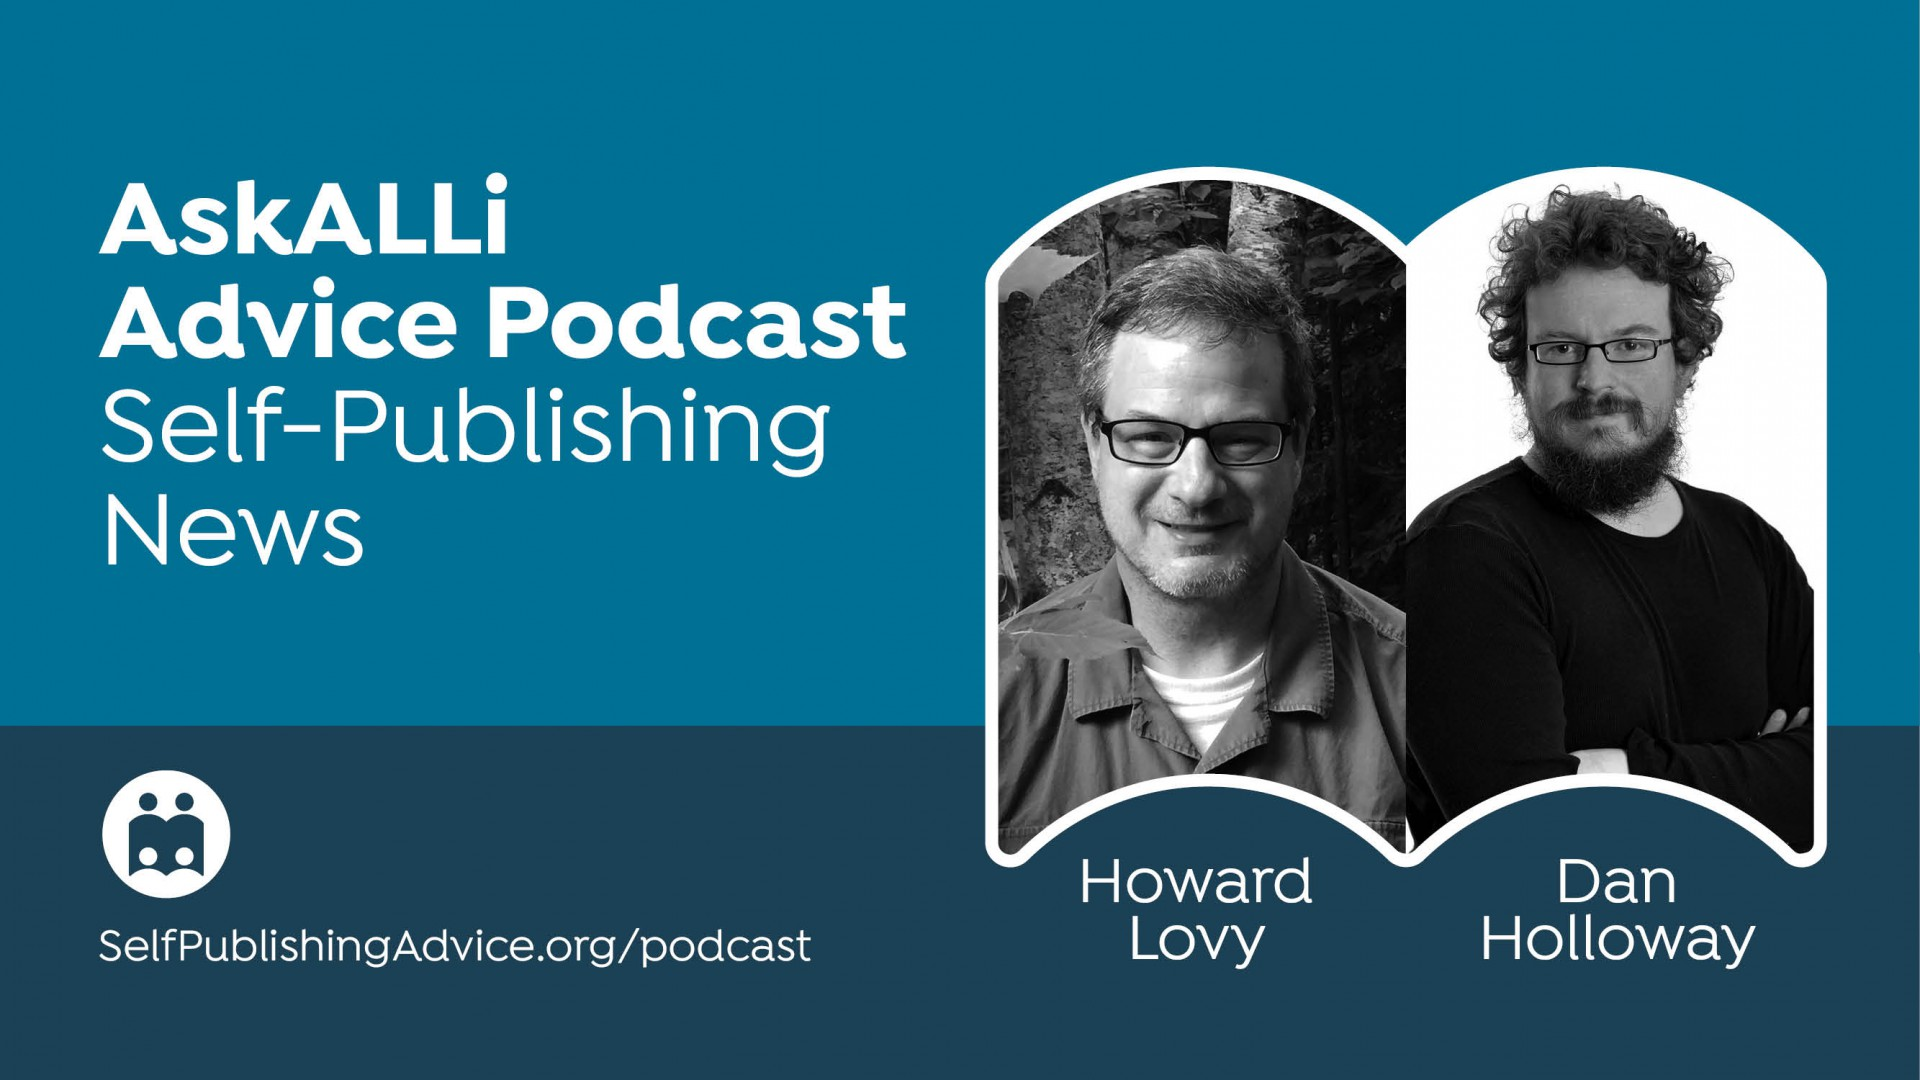 What Does Brexit Mean For Indie Authors? Self-Publishing News Podcast With Dan Holloway And Howard Lovy